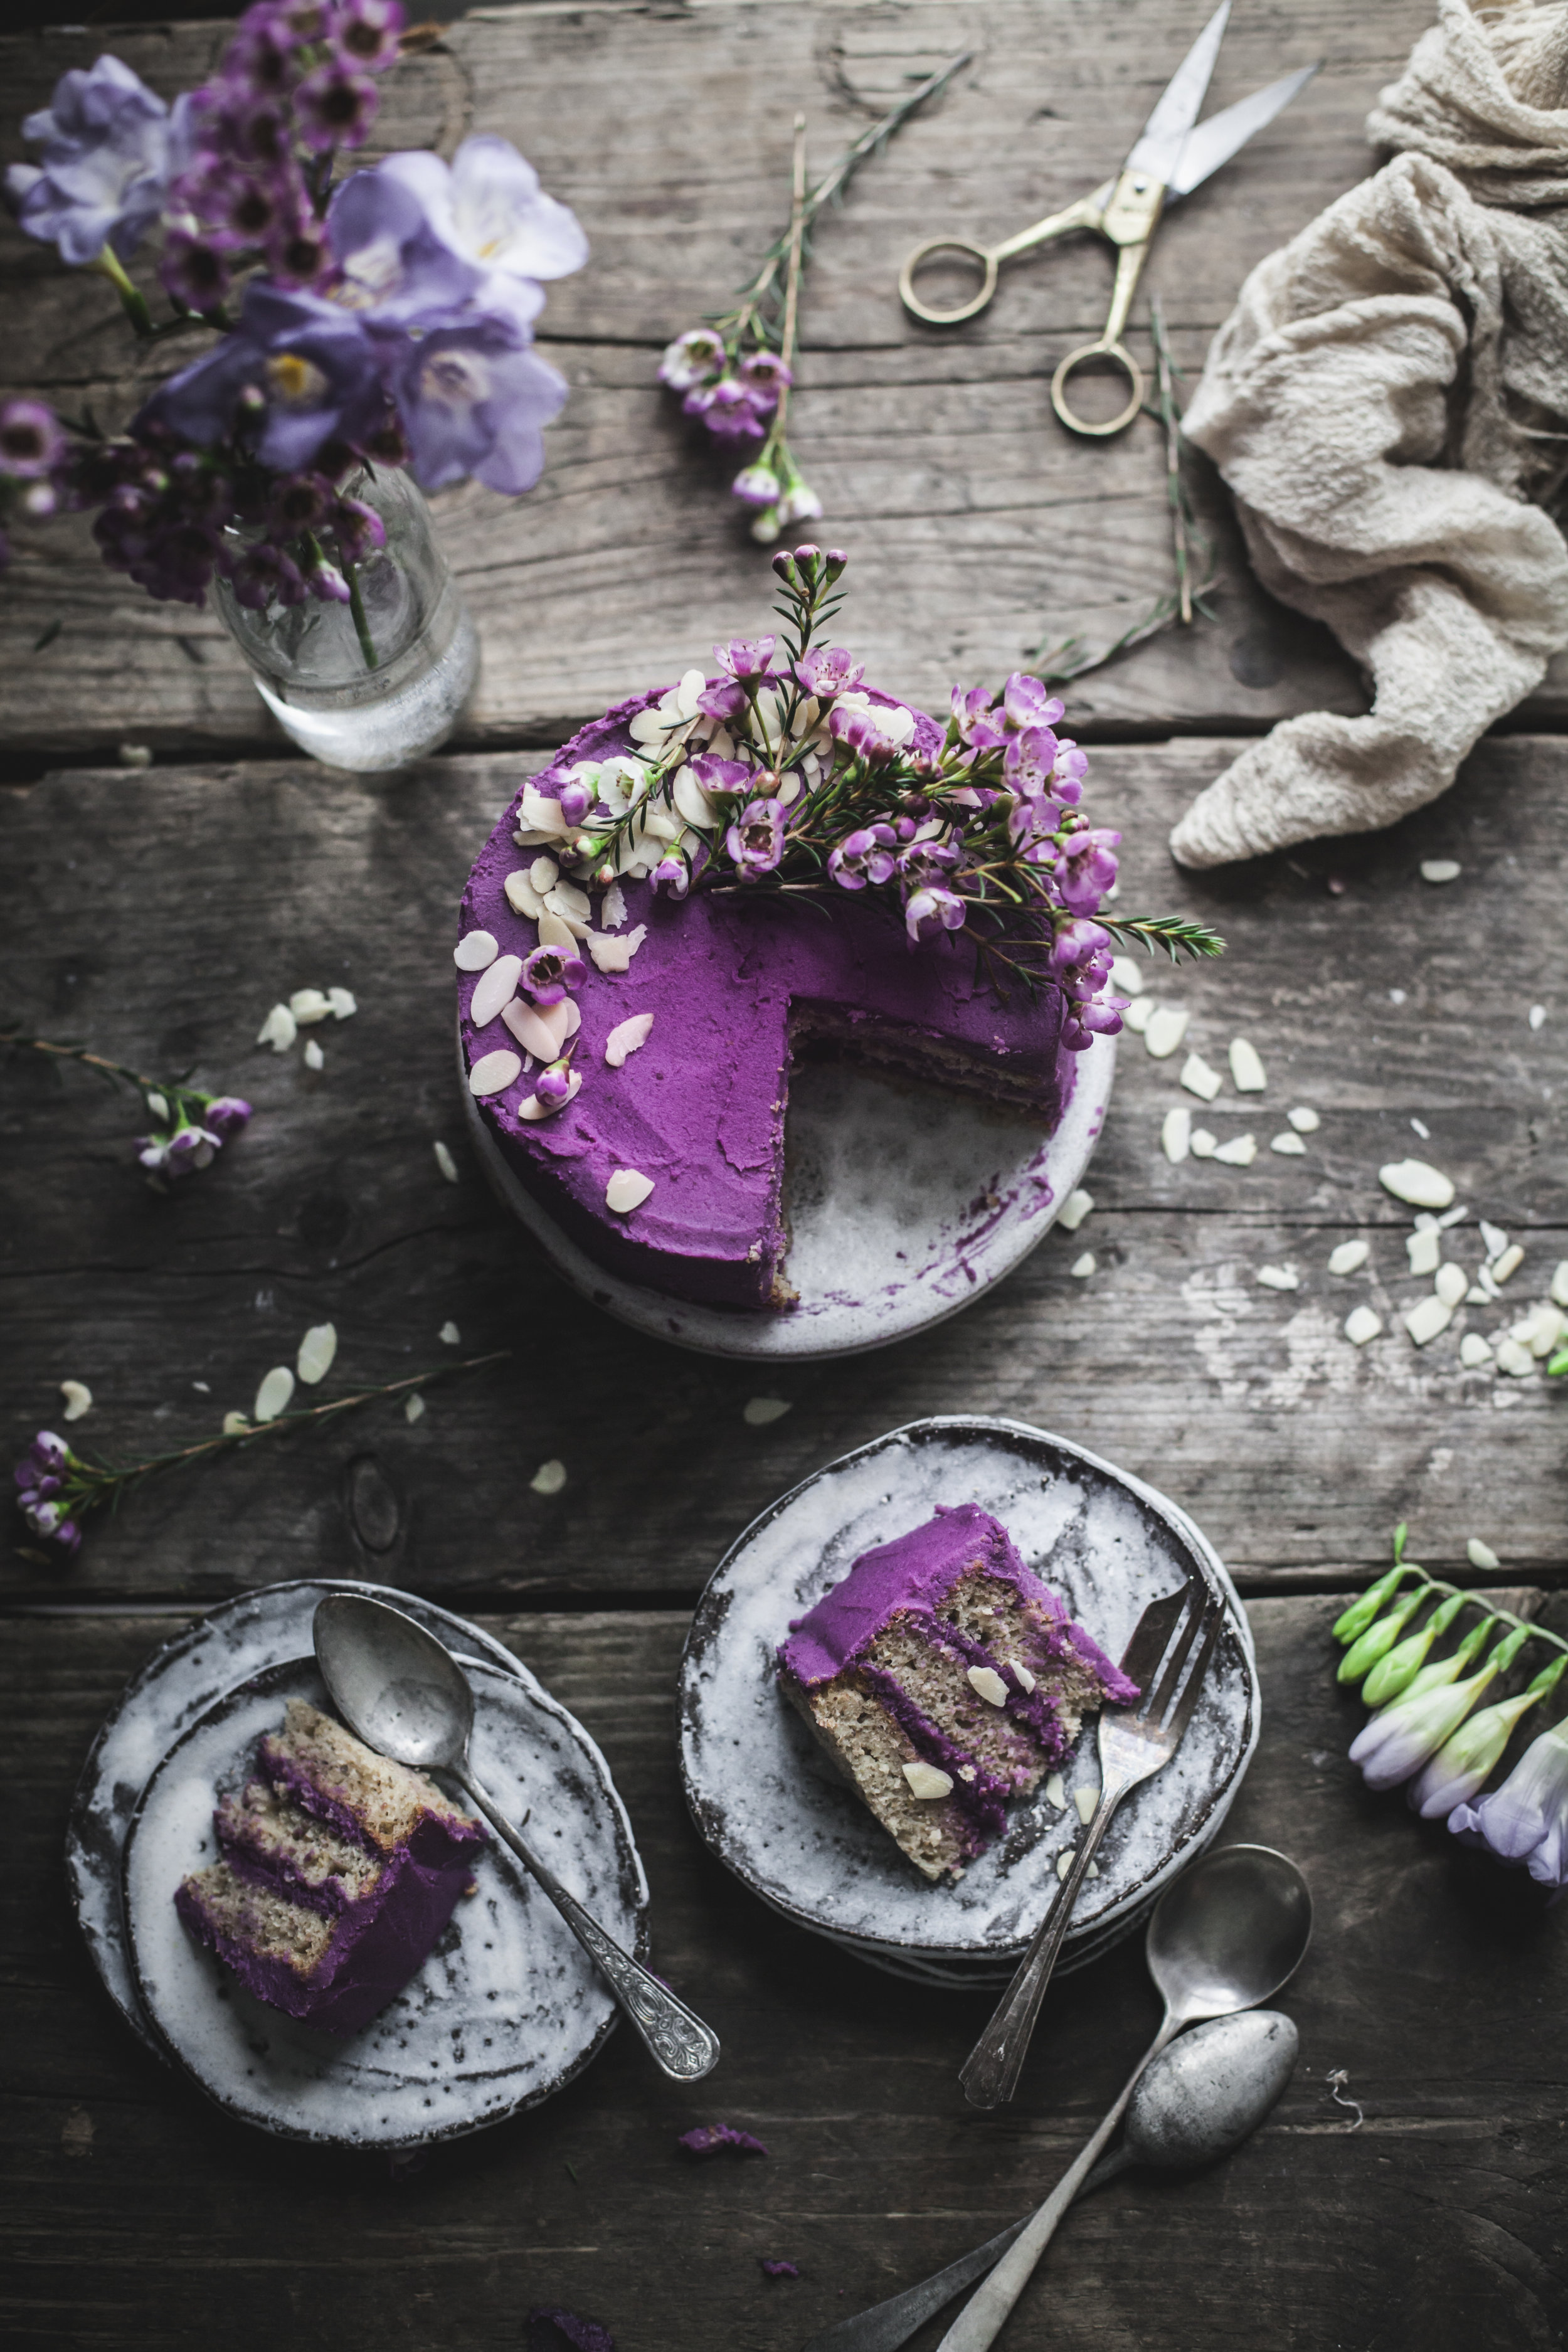 earl grey lemon cake with purple potatoes and white chocolate frosting